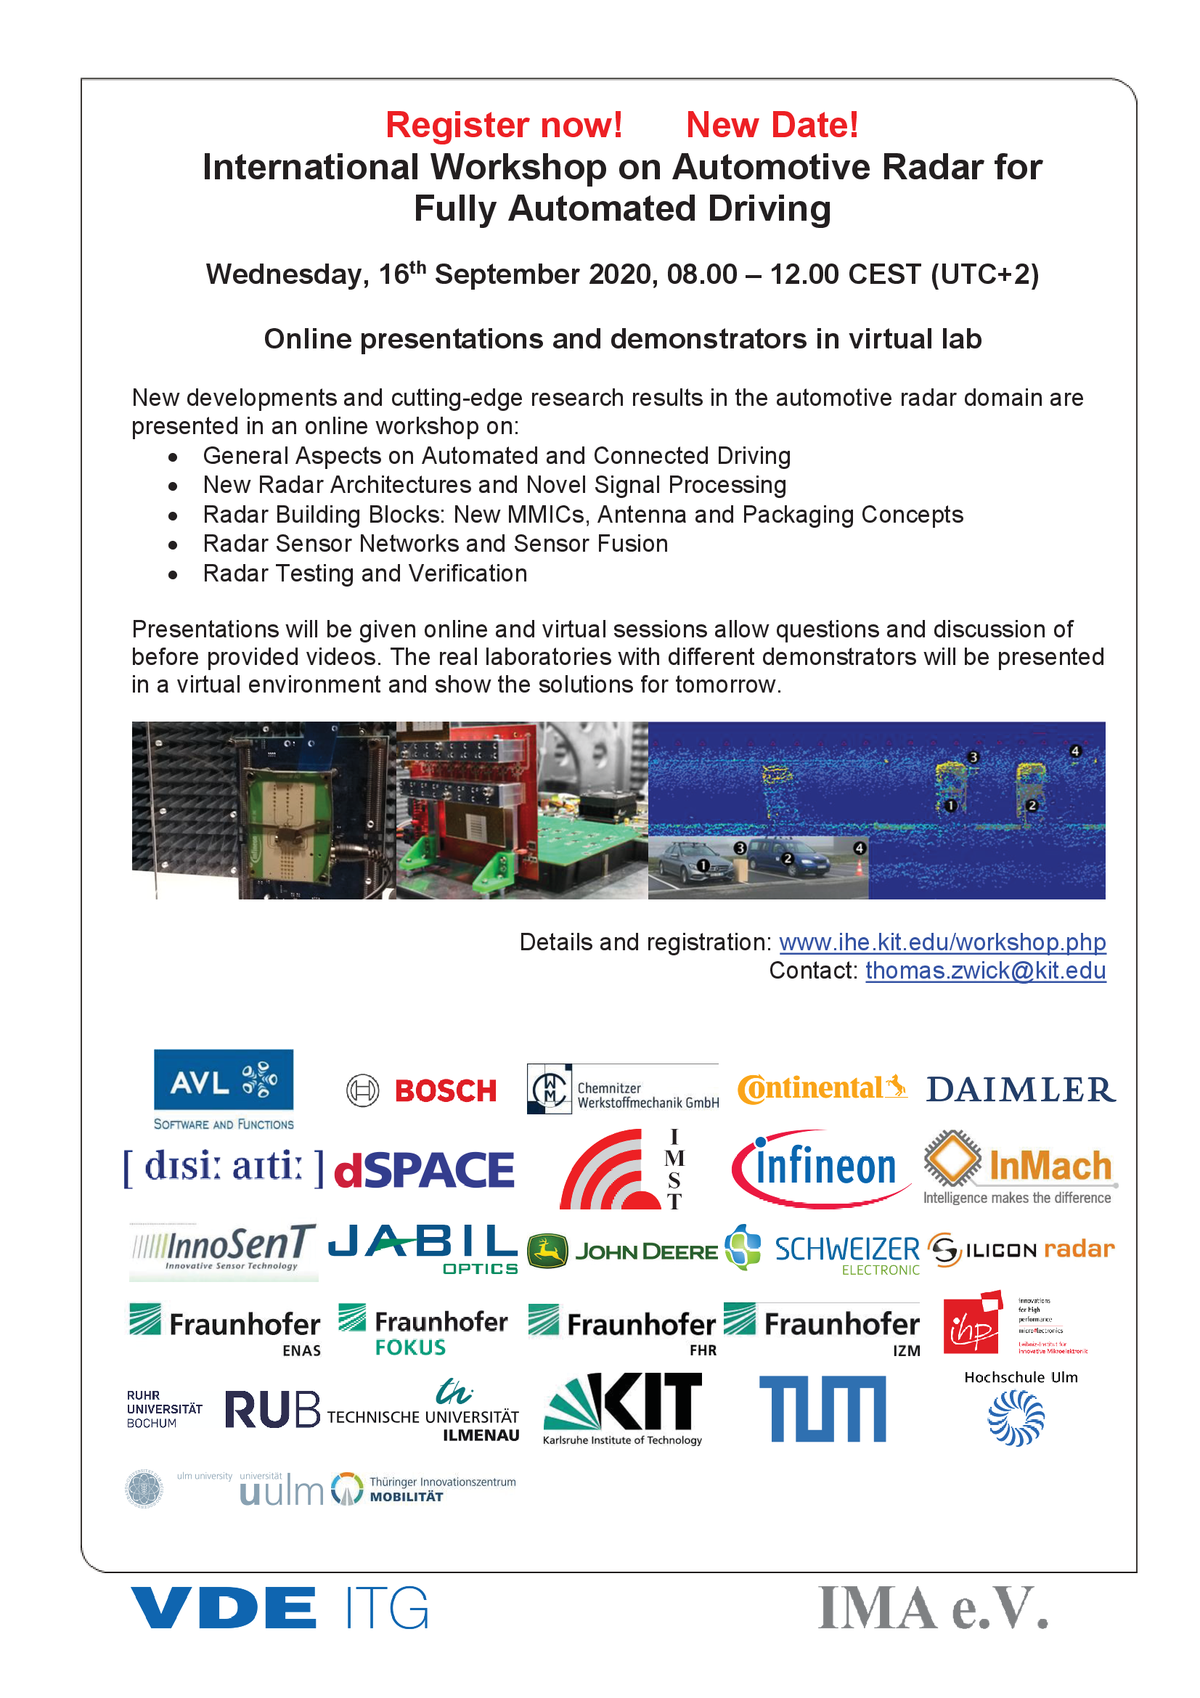 Flyer for International Workshop on Automotive Radar for Fully Automated Driving